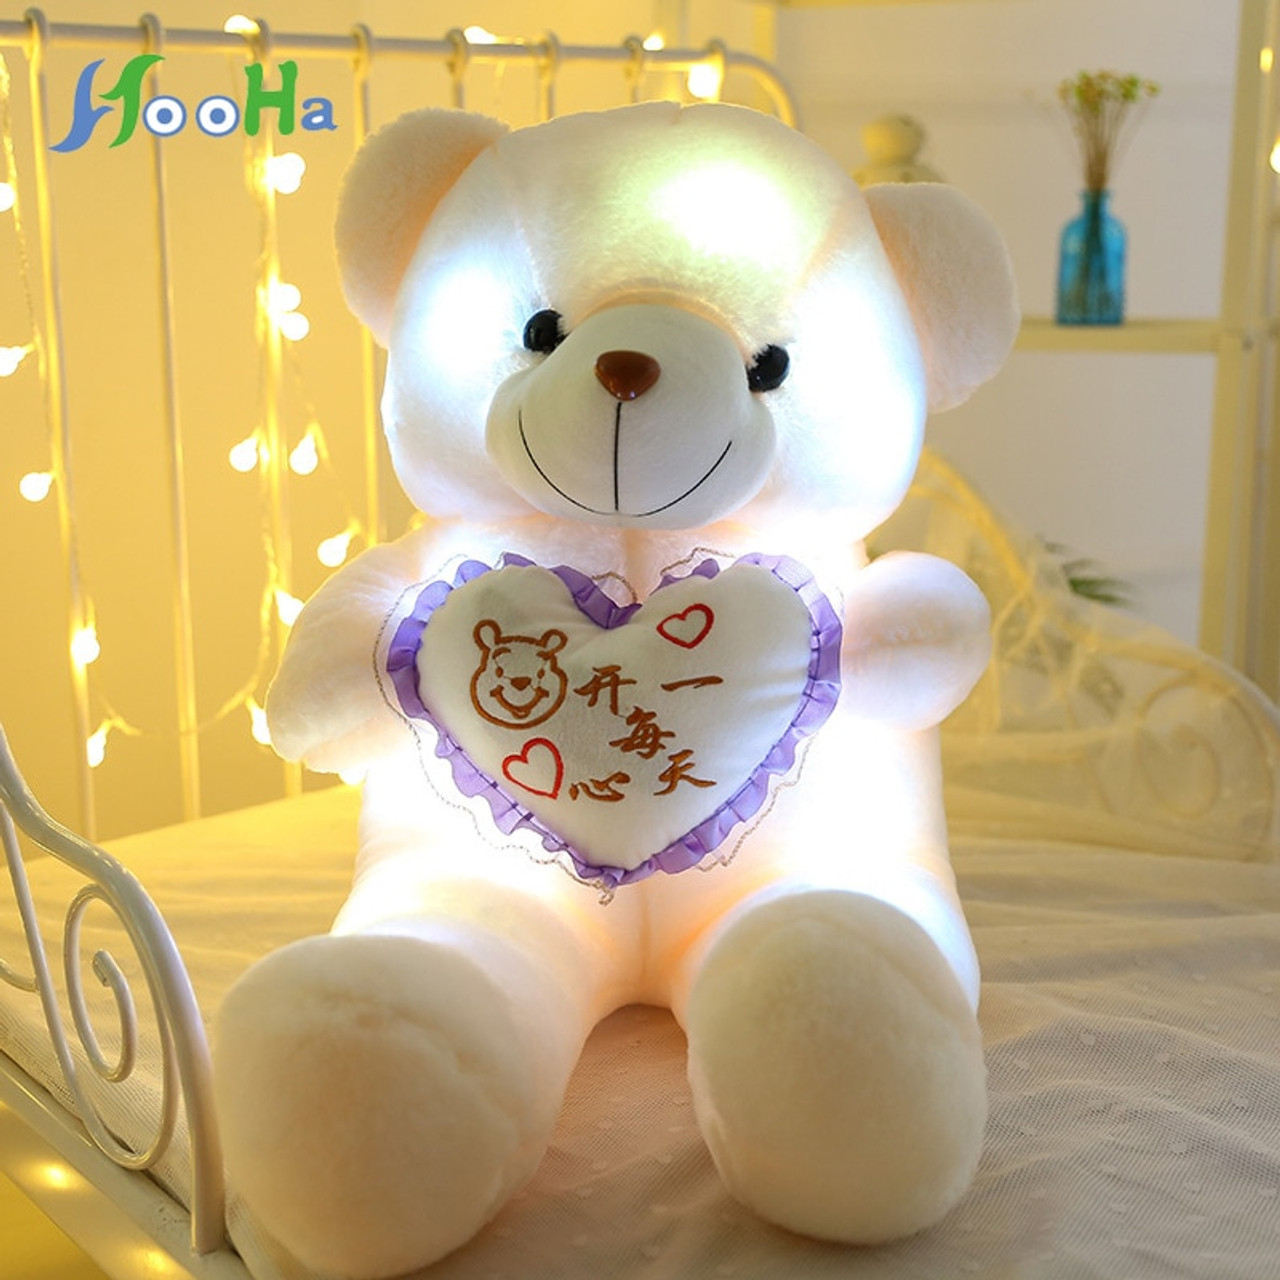 Cute Lamb Stuffed Animals, 50cm Creative Luminous Teddy Bear Led Plush Light Pillow Animals Plush Toy Colorful Glowing Christmas Gifts For Girls Present Onshopdeals Com